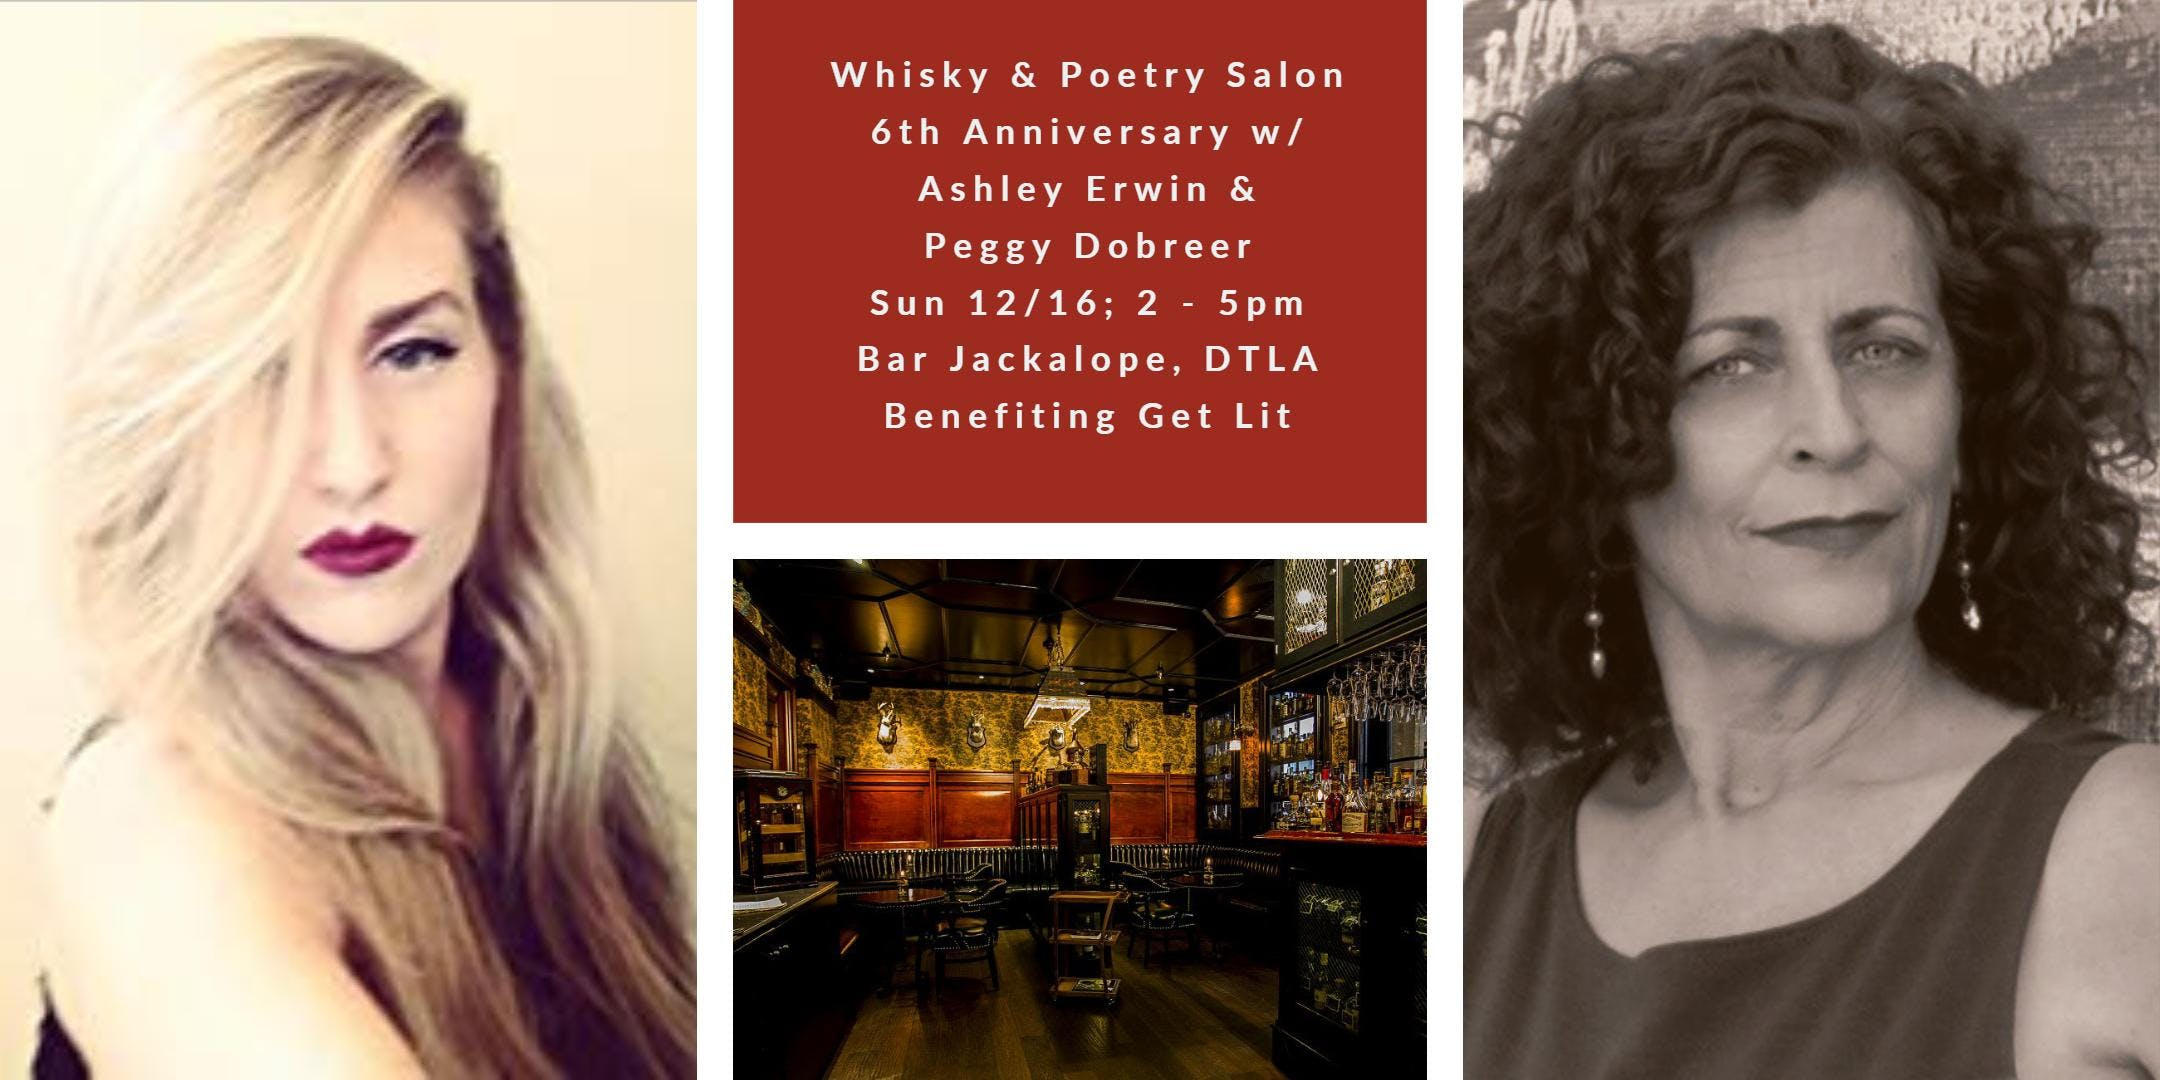 Whisky & Poetry Salon ~ 6th Anniversary